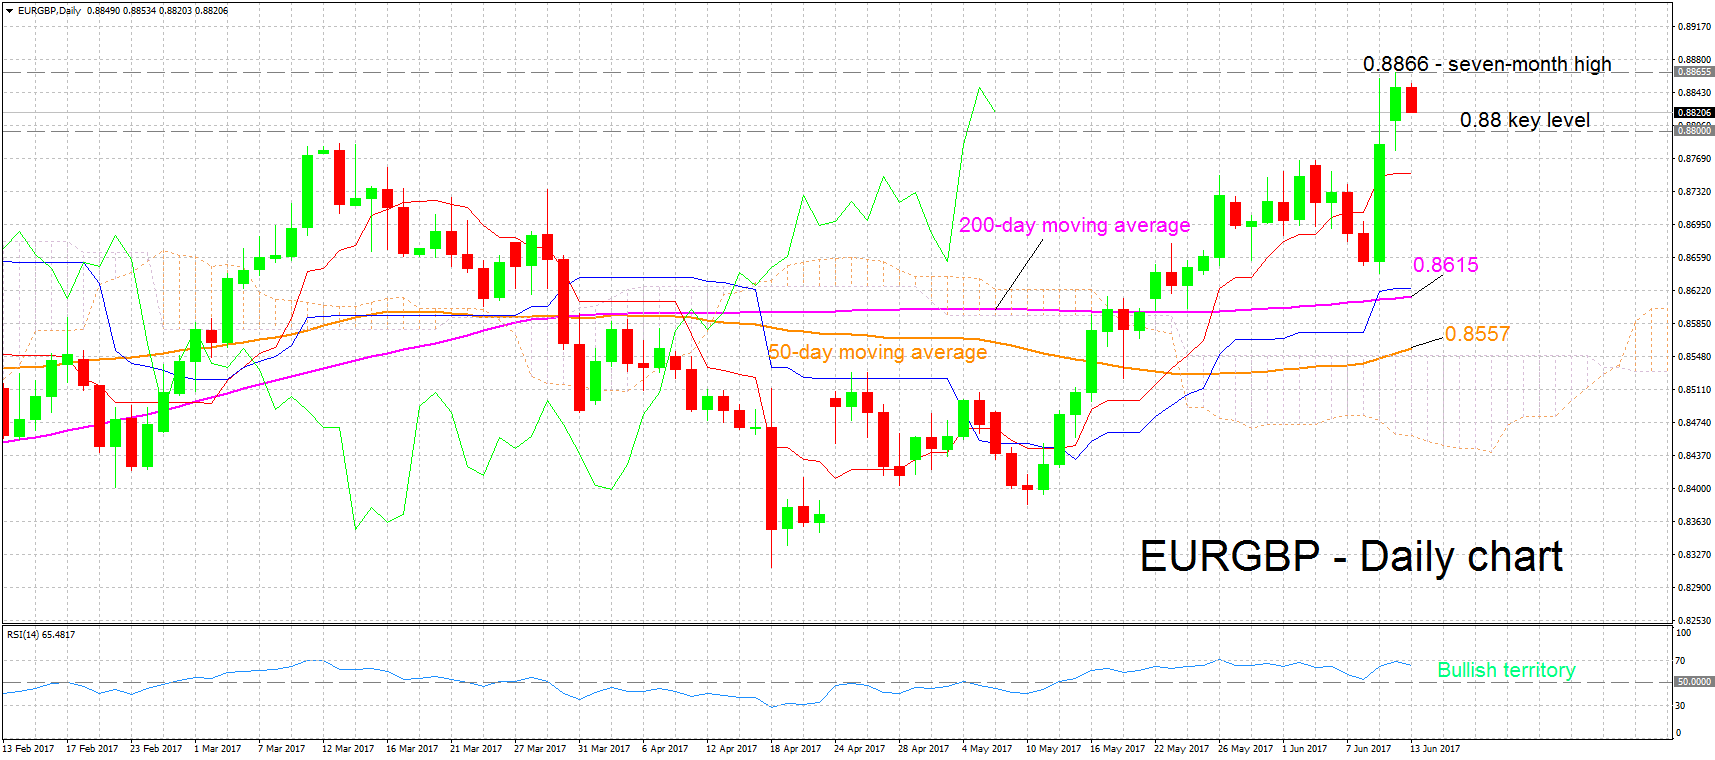 EURGBP technical analysis review